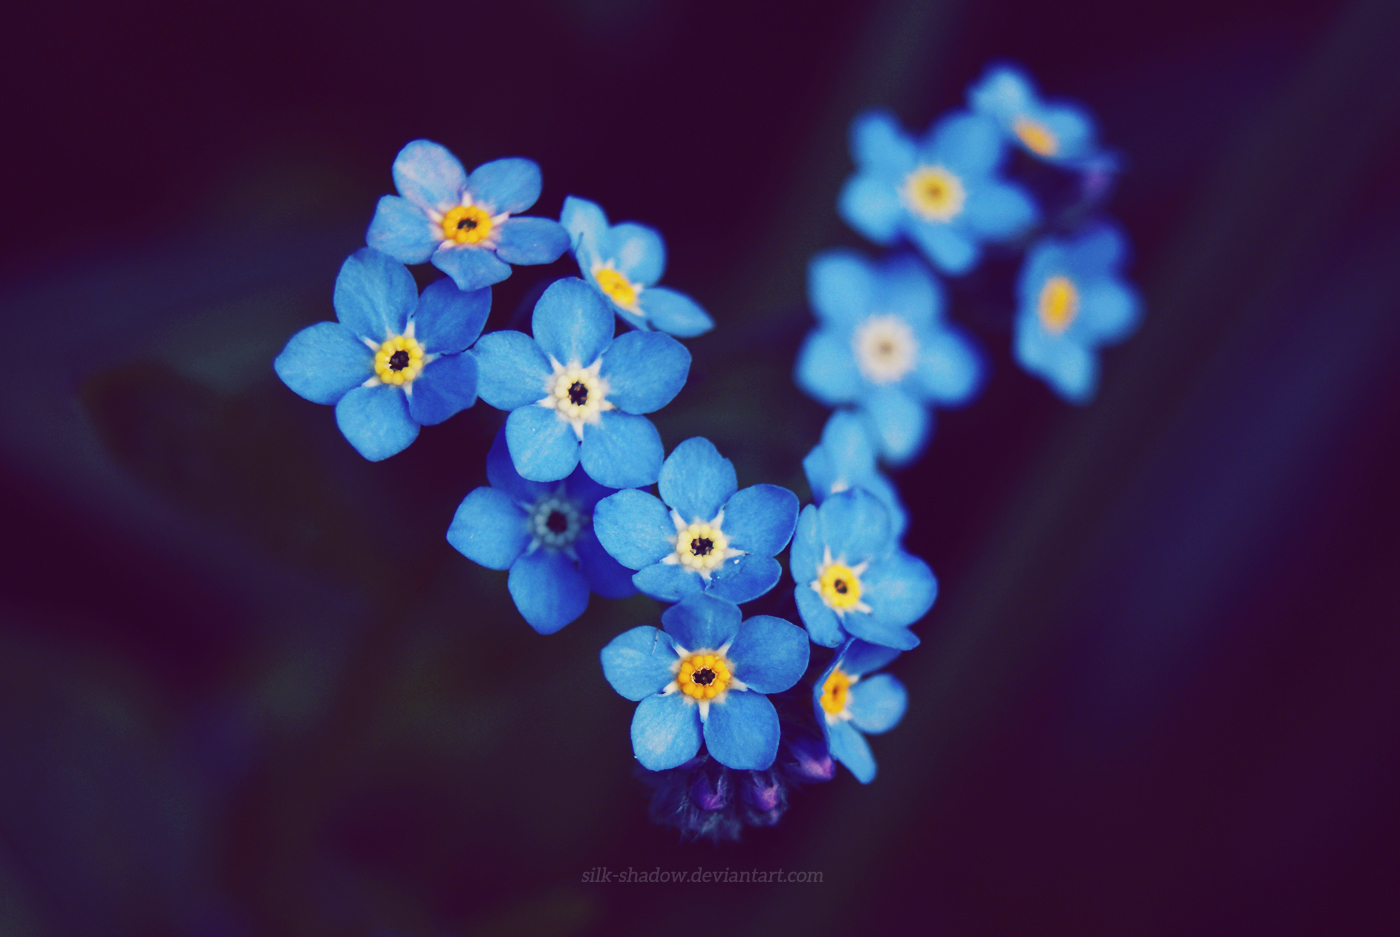 Forget Me Not By Silk Shadow On Deviantart